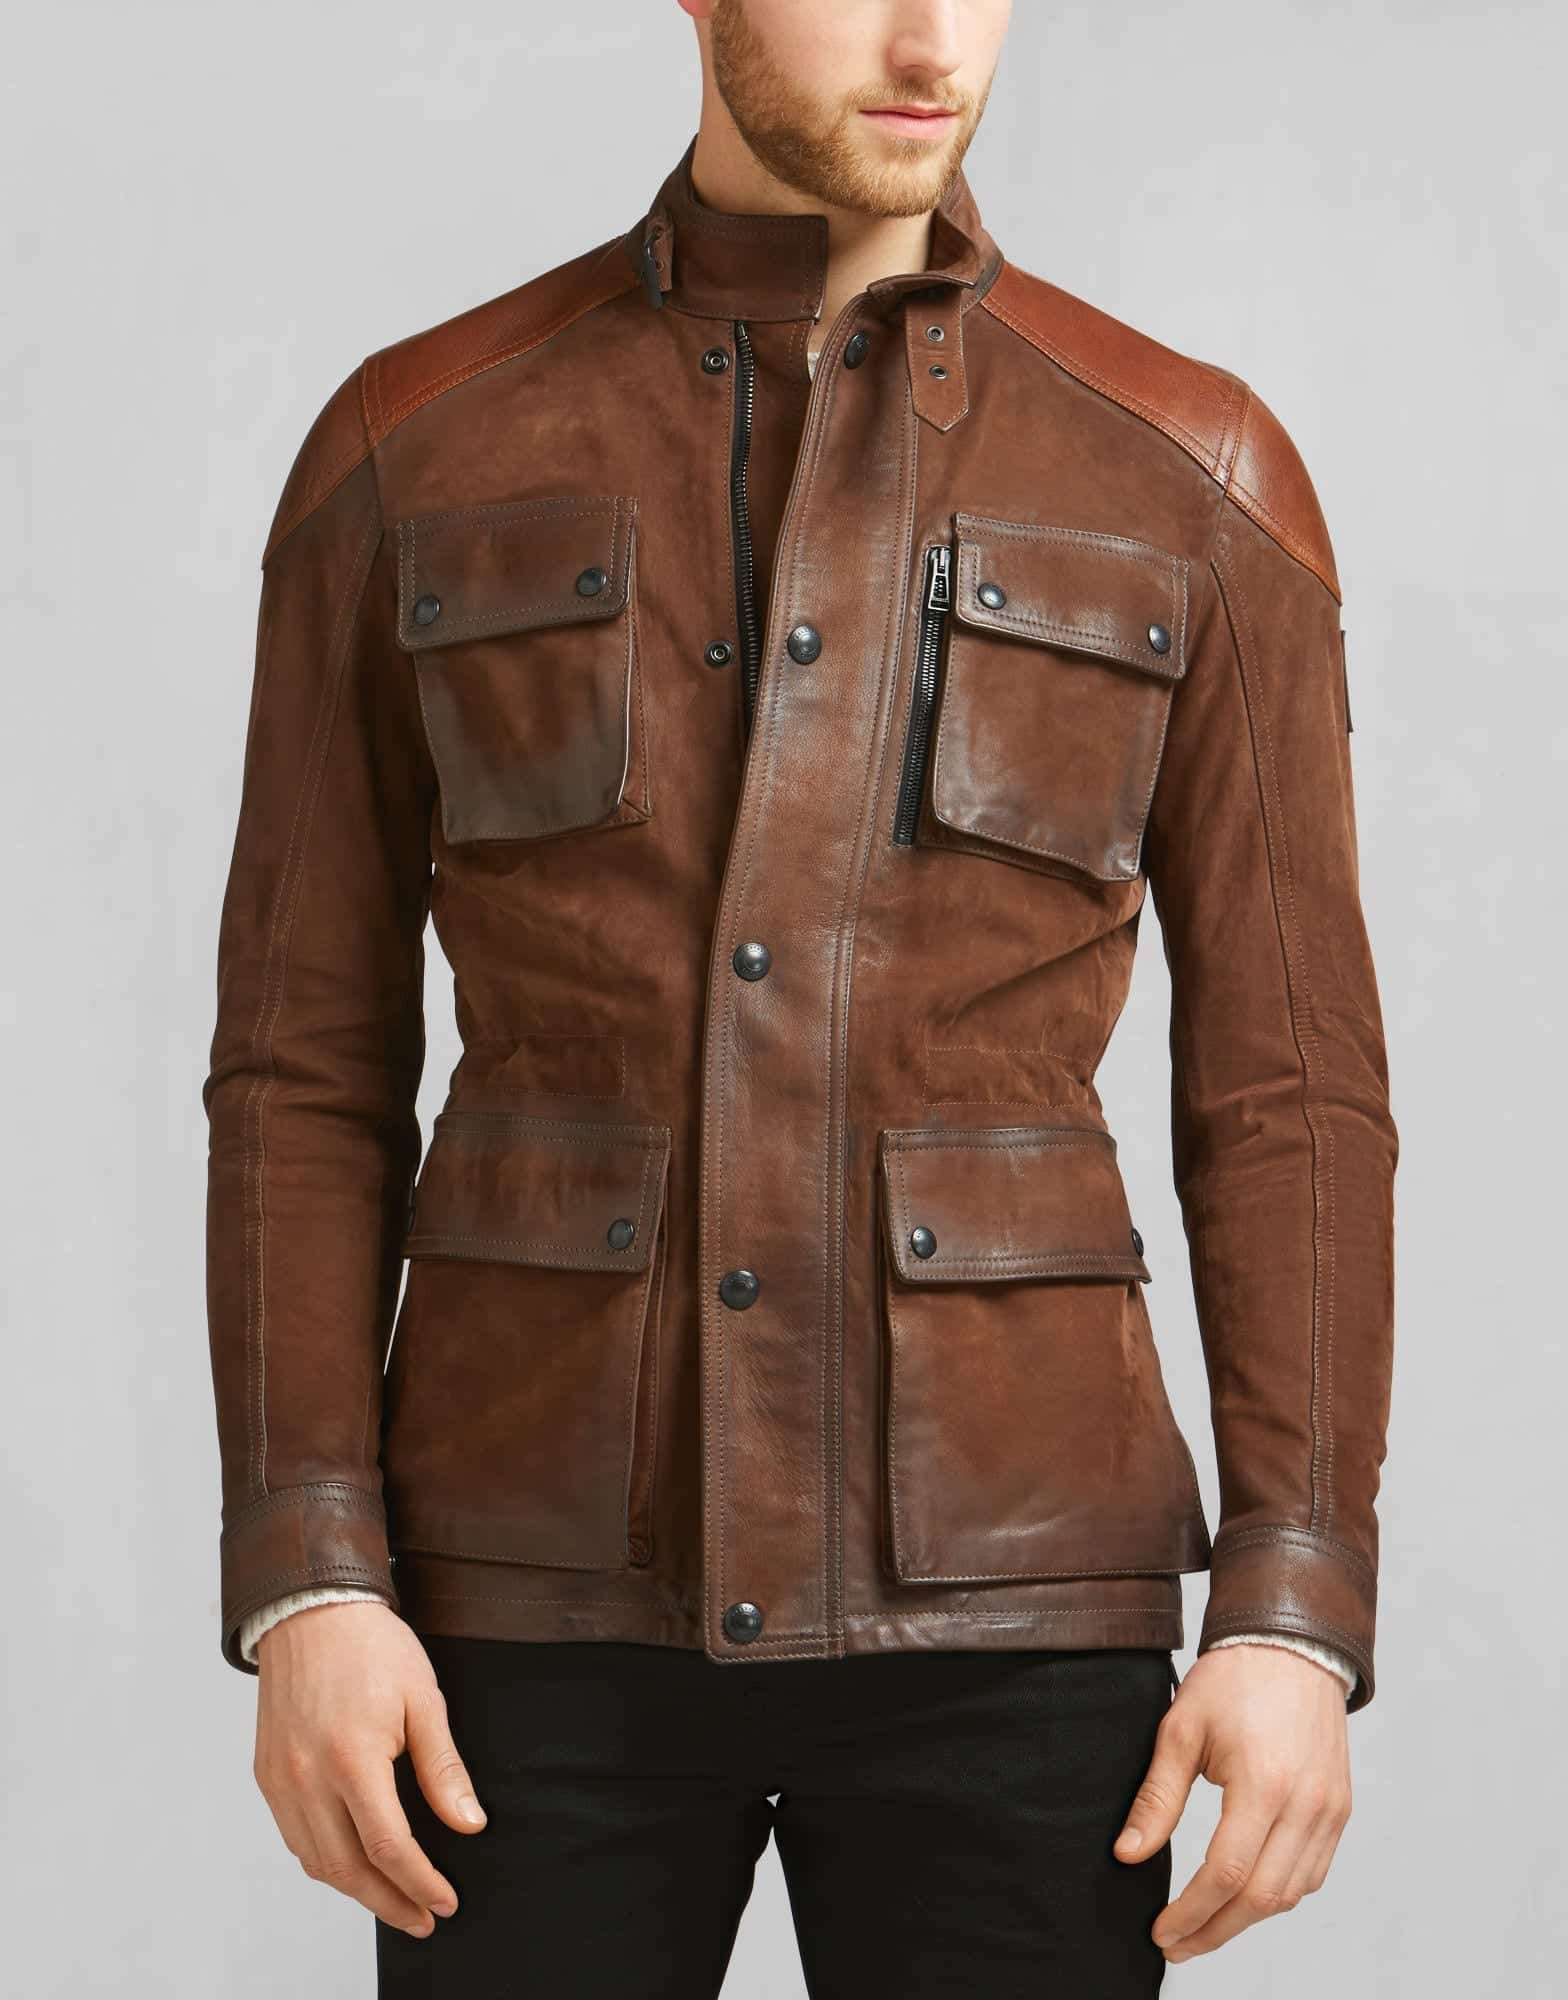 Most popular leather jackets